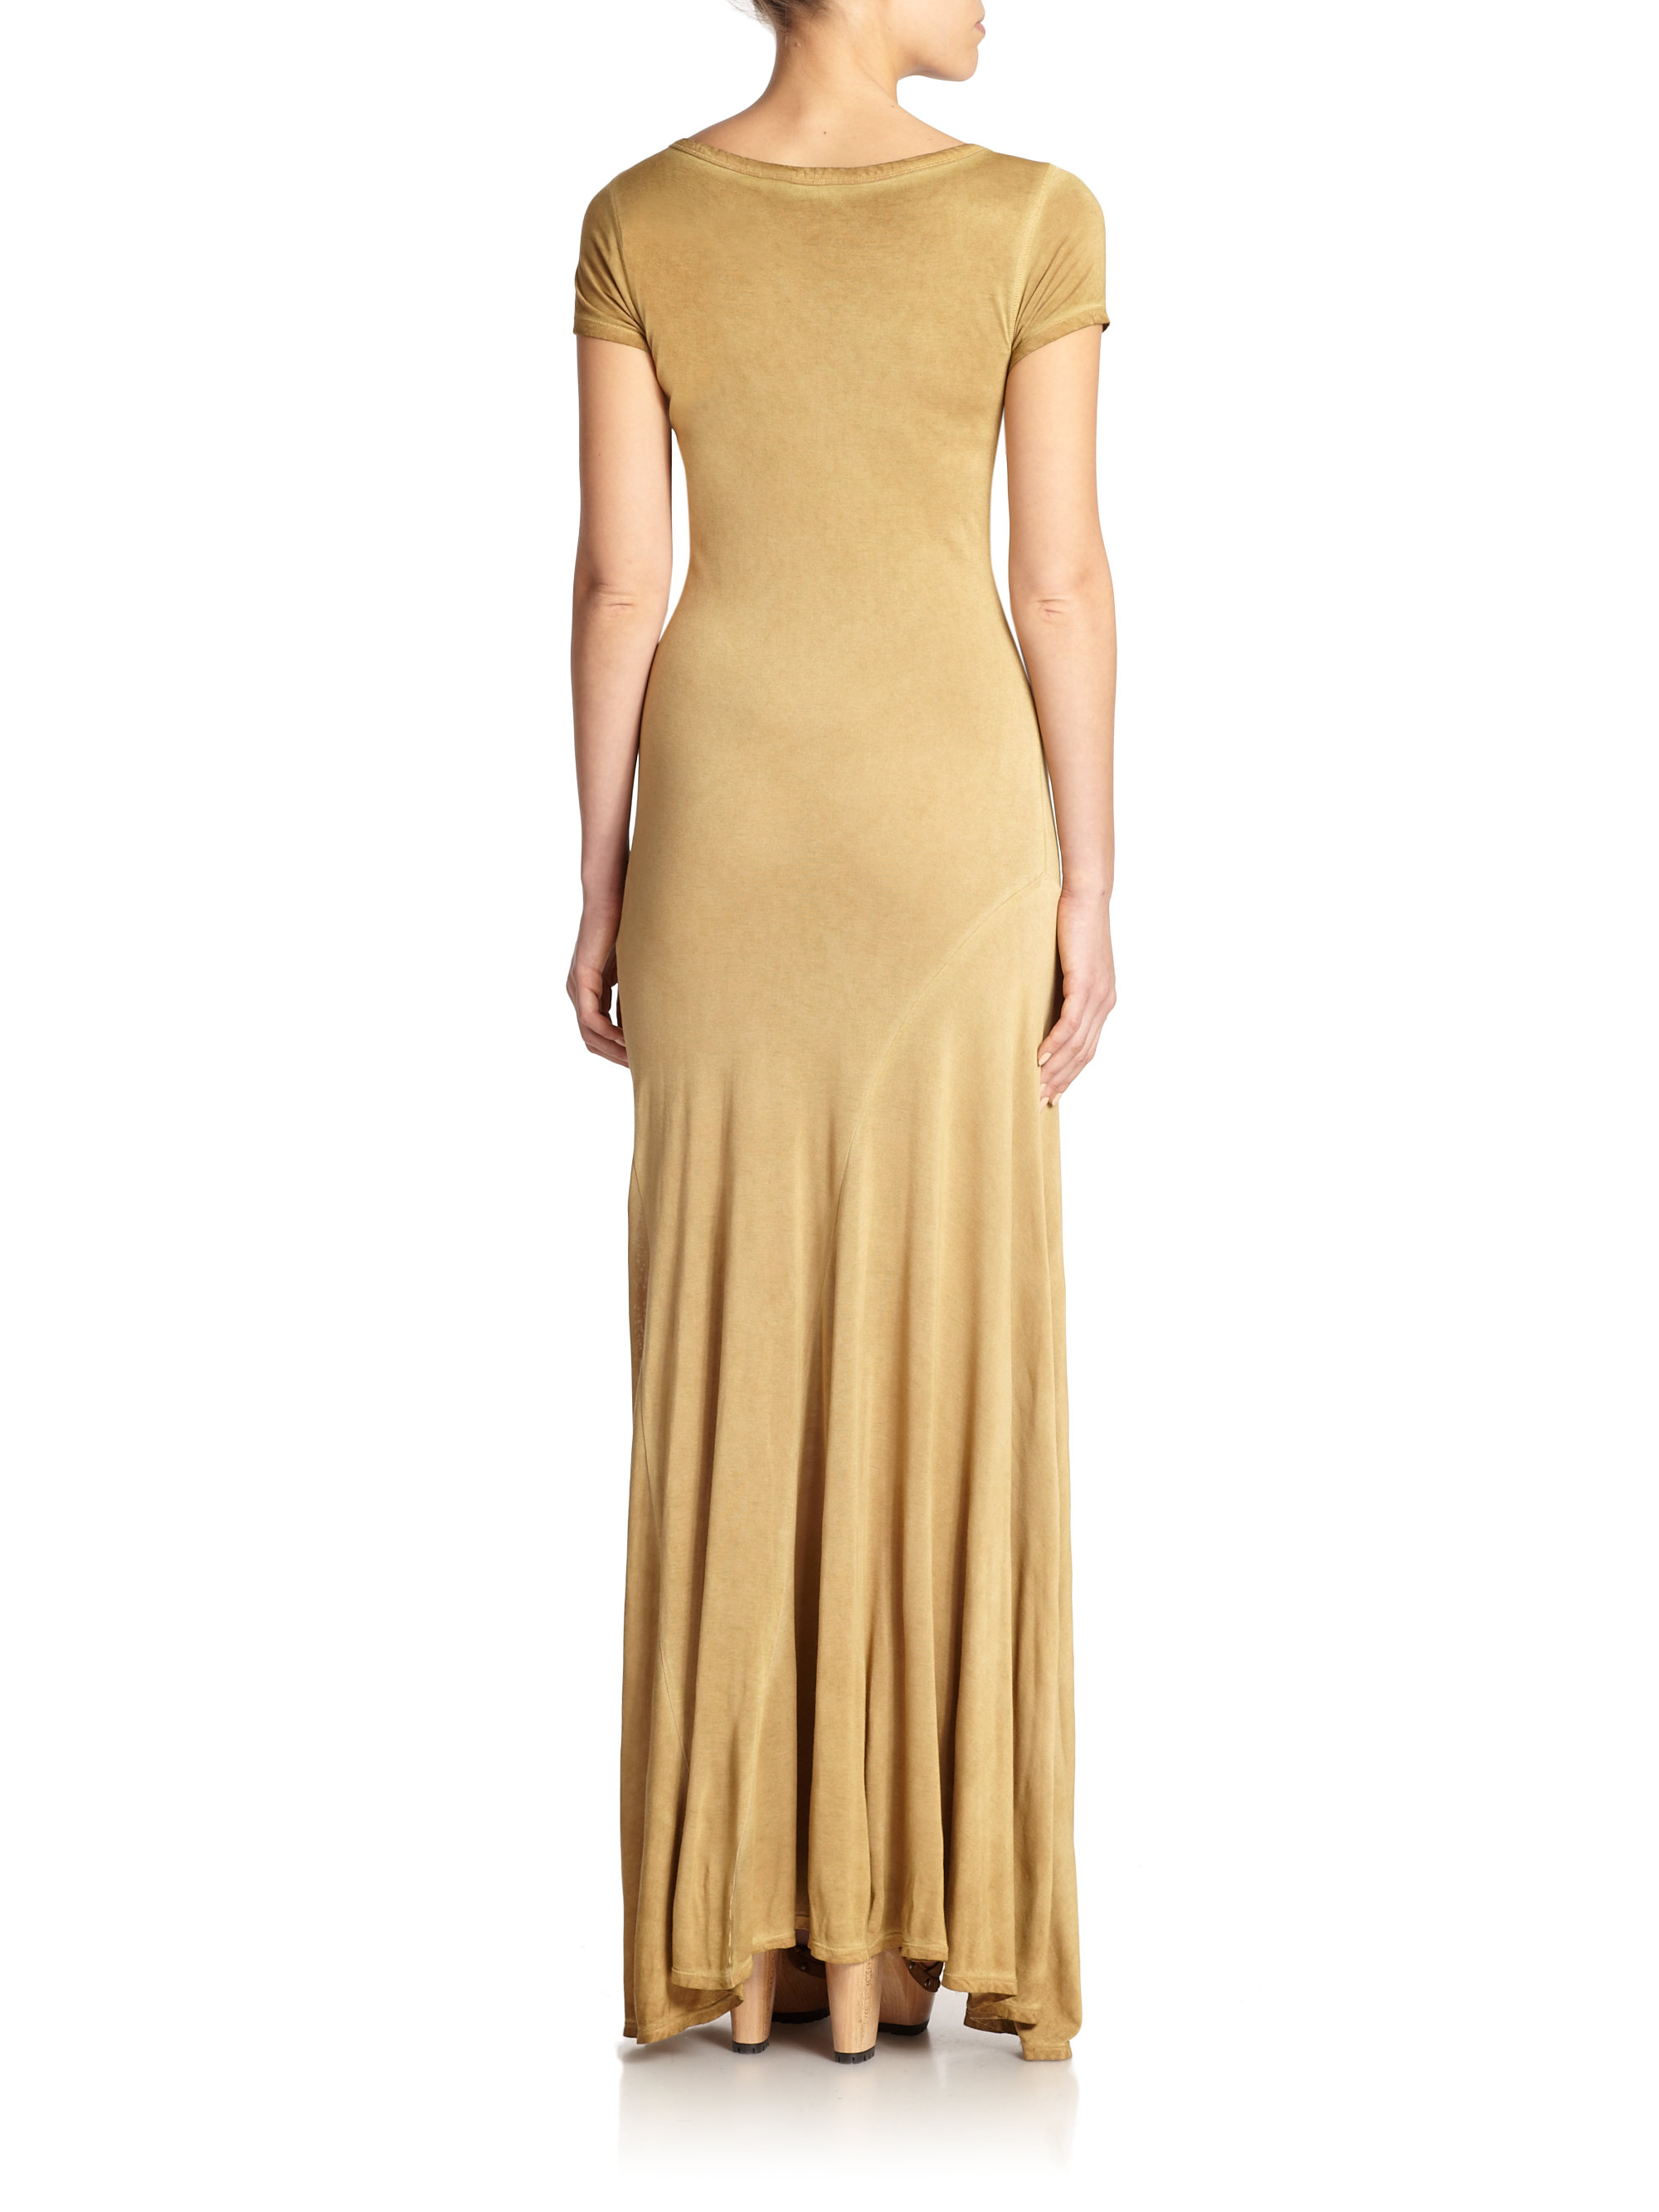 Cool Lauren Ralph Lauren Maxi Dress - Glamorous Rouge Women Clothing Dressesralph By Ralph Lauren ...